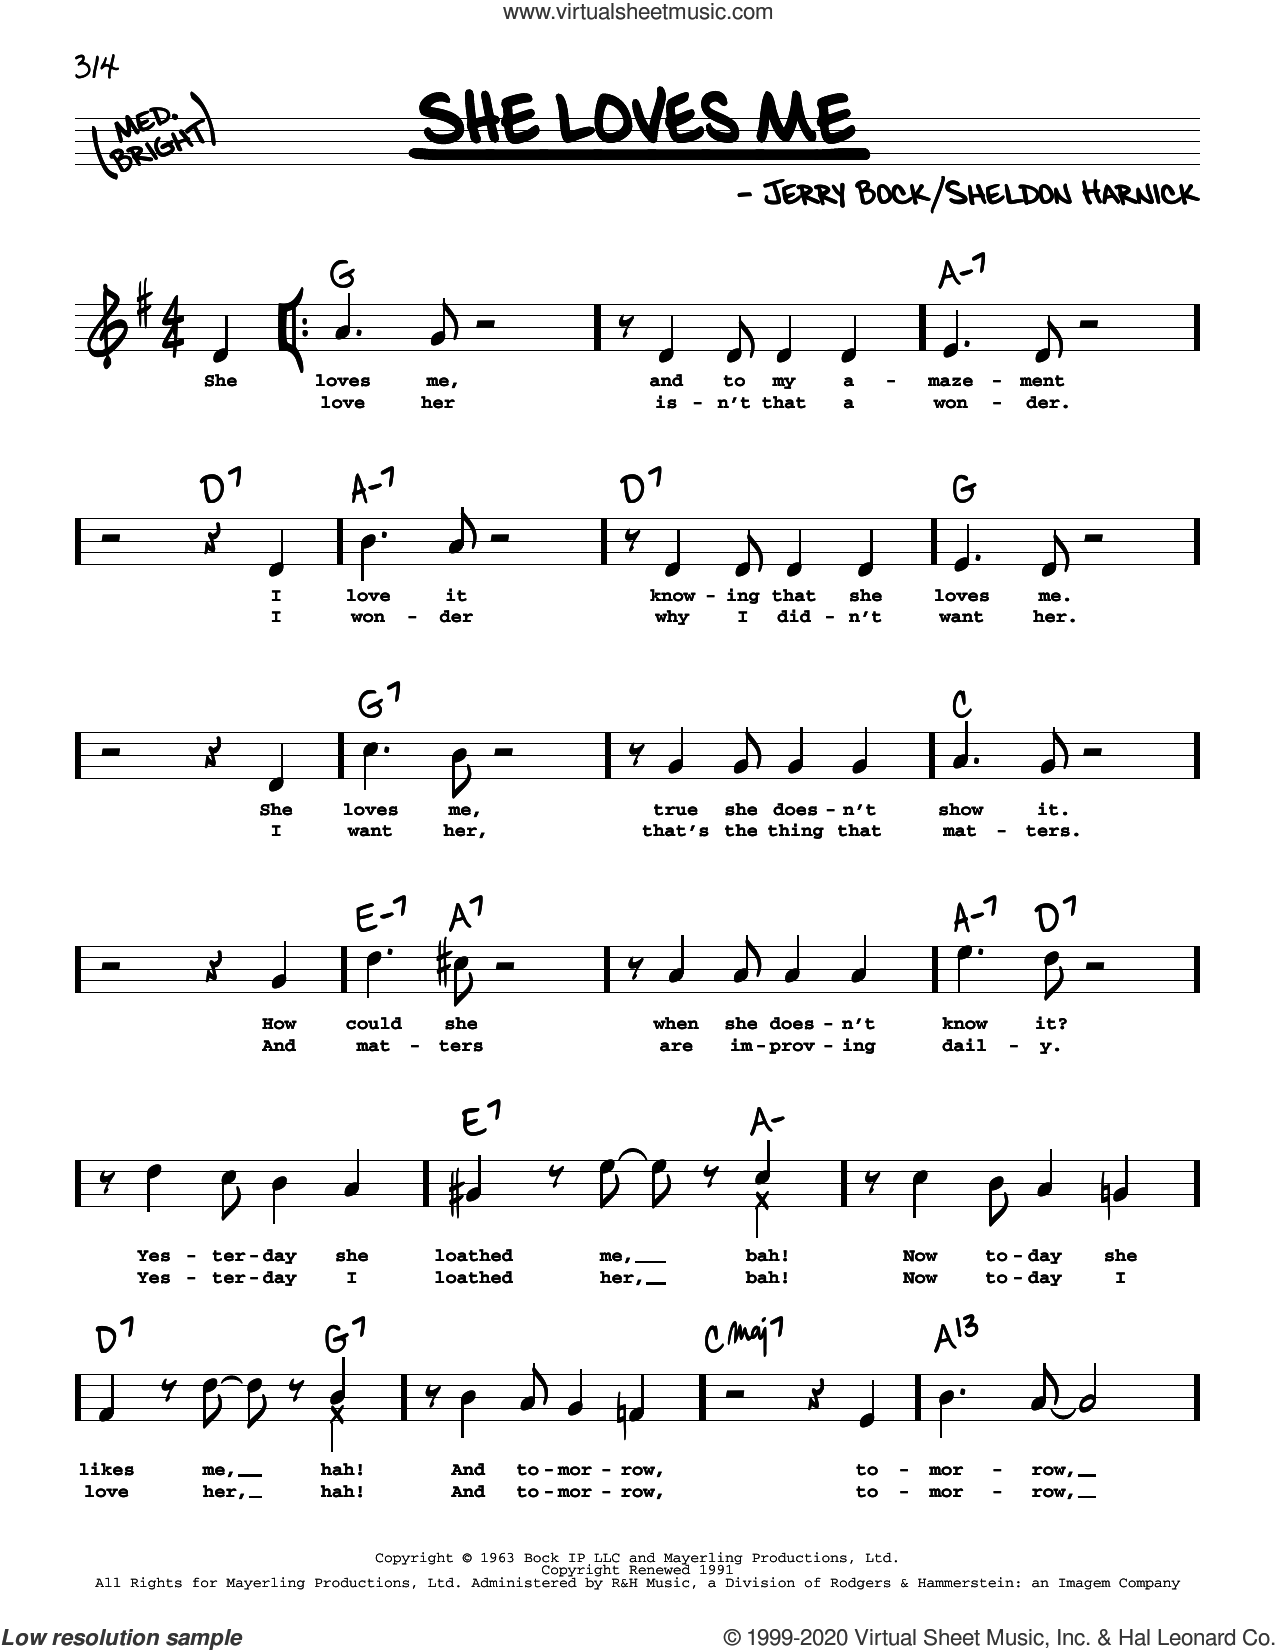 She Loves Me (High Voice) sheet music for voice and other instruments (high voice) by Jerry Bock, Sheldon Harnick and Sheldon Harnick and Jerry Bock, intermediate skill level